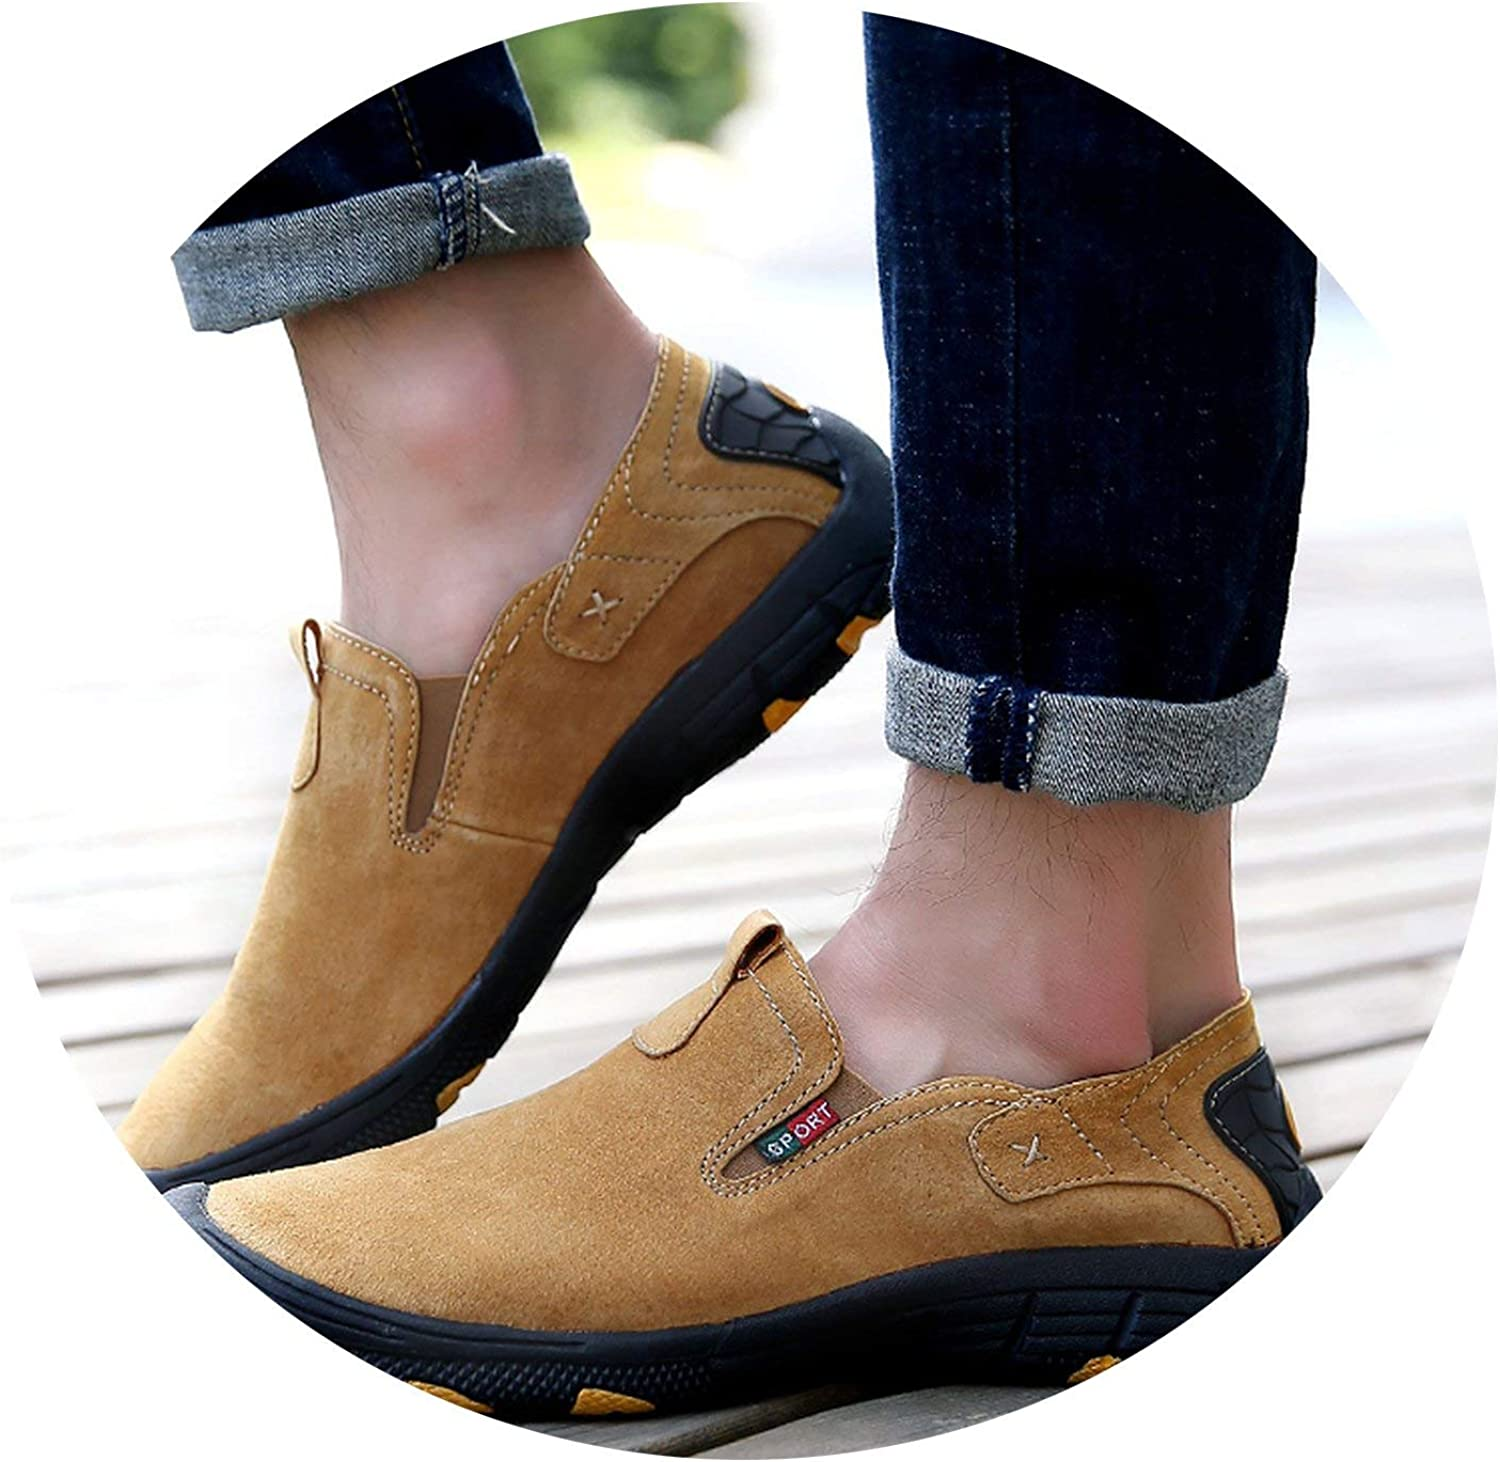 OH WHY Casual shoes Cow Suede Leather shoes Moccasins Slip On Men's Flats Loafers Male shoes